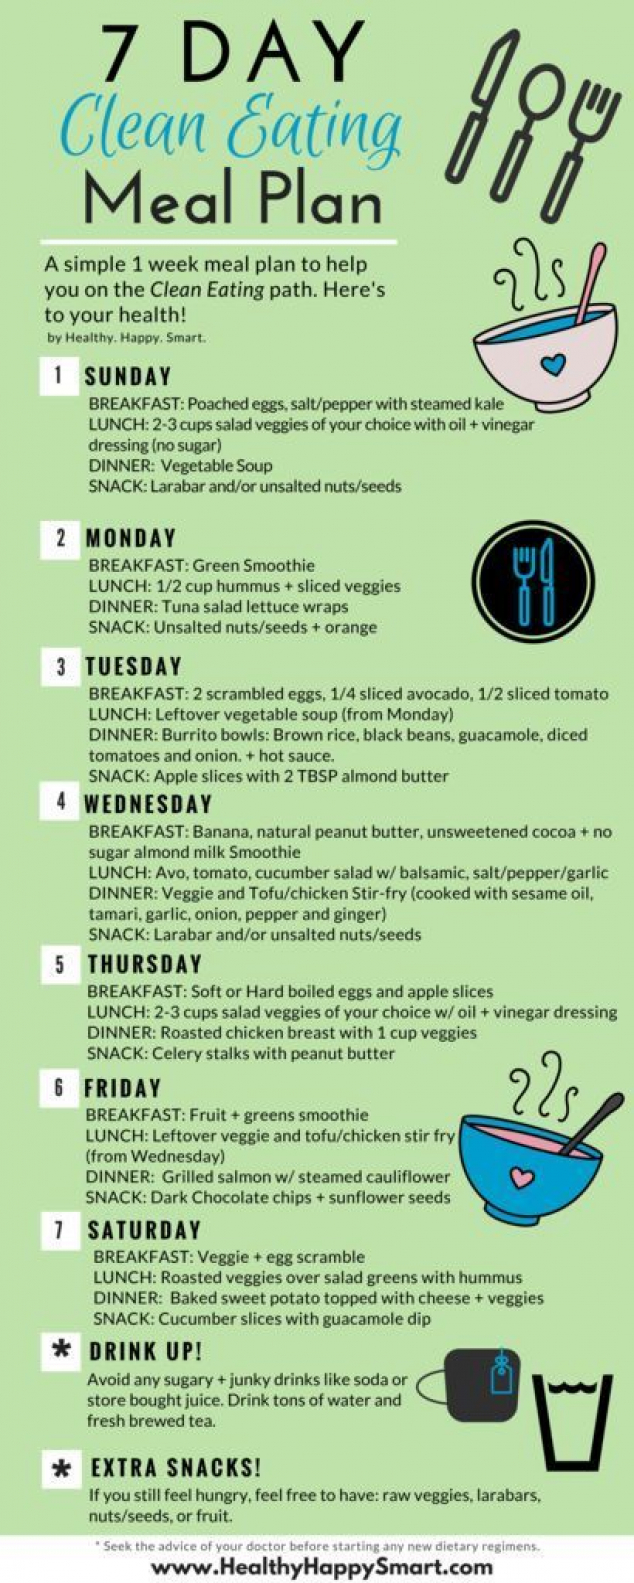 7 day FREE clean eating meal plan 1 week plan for anyone trying to